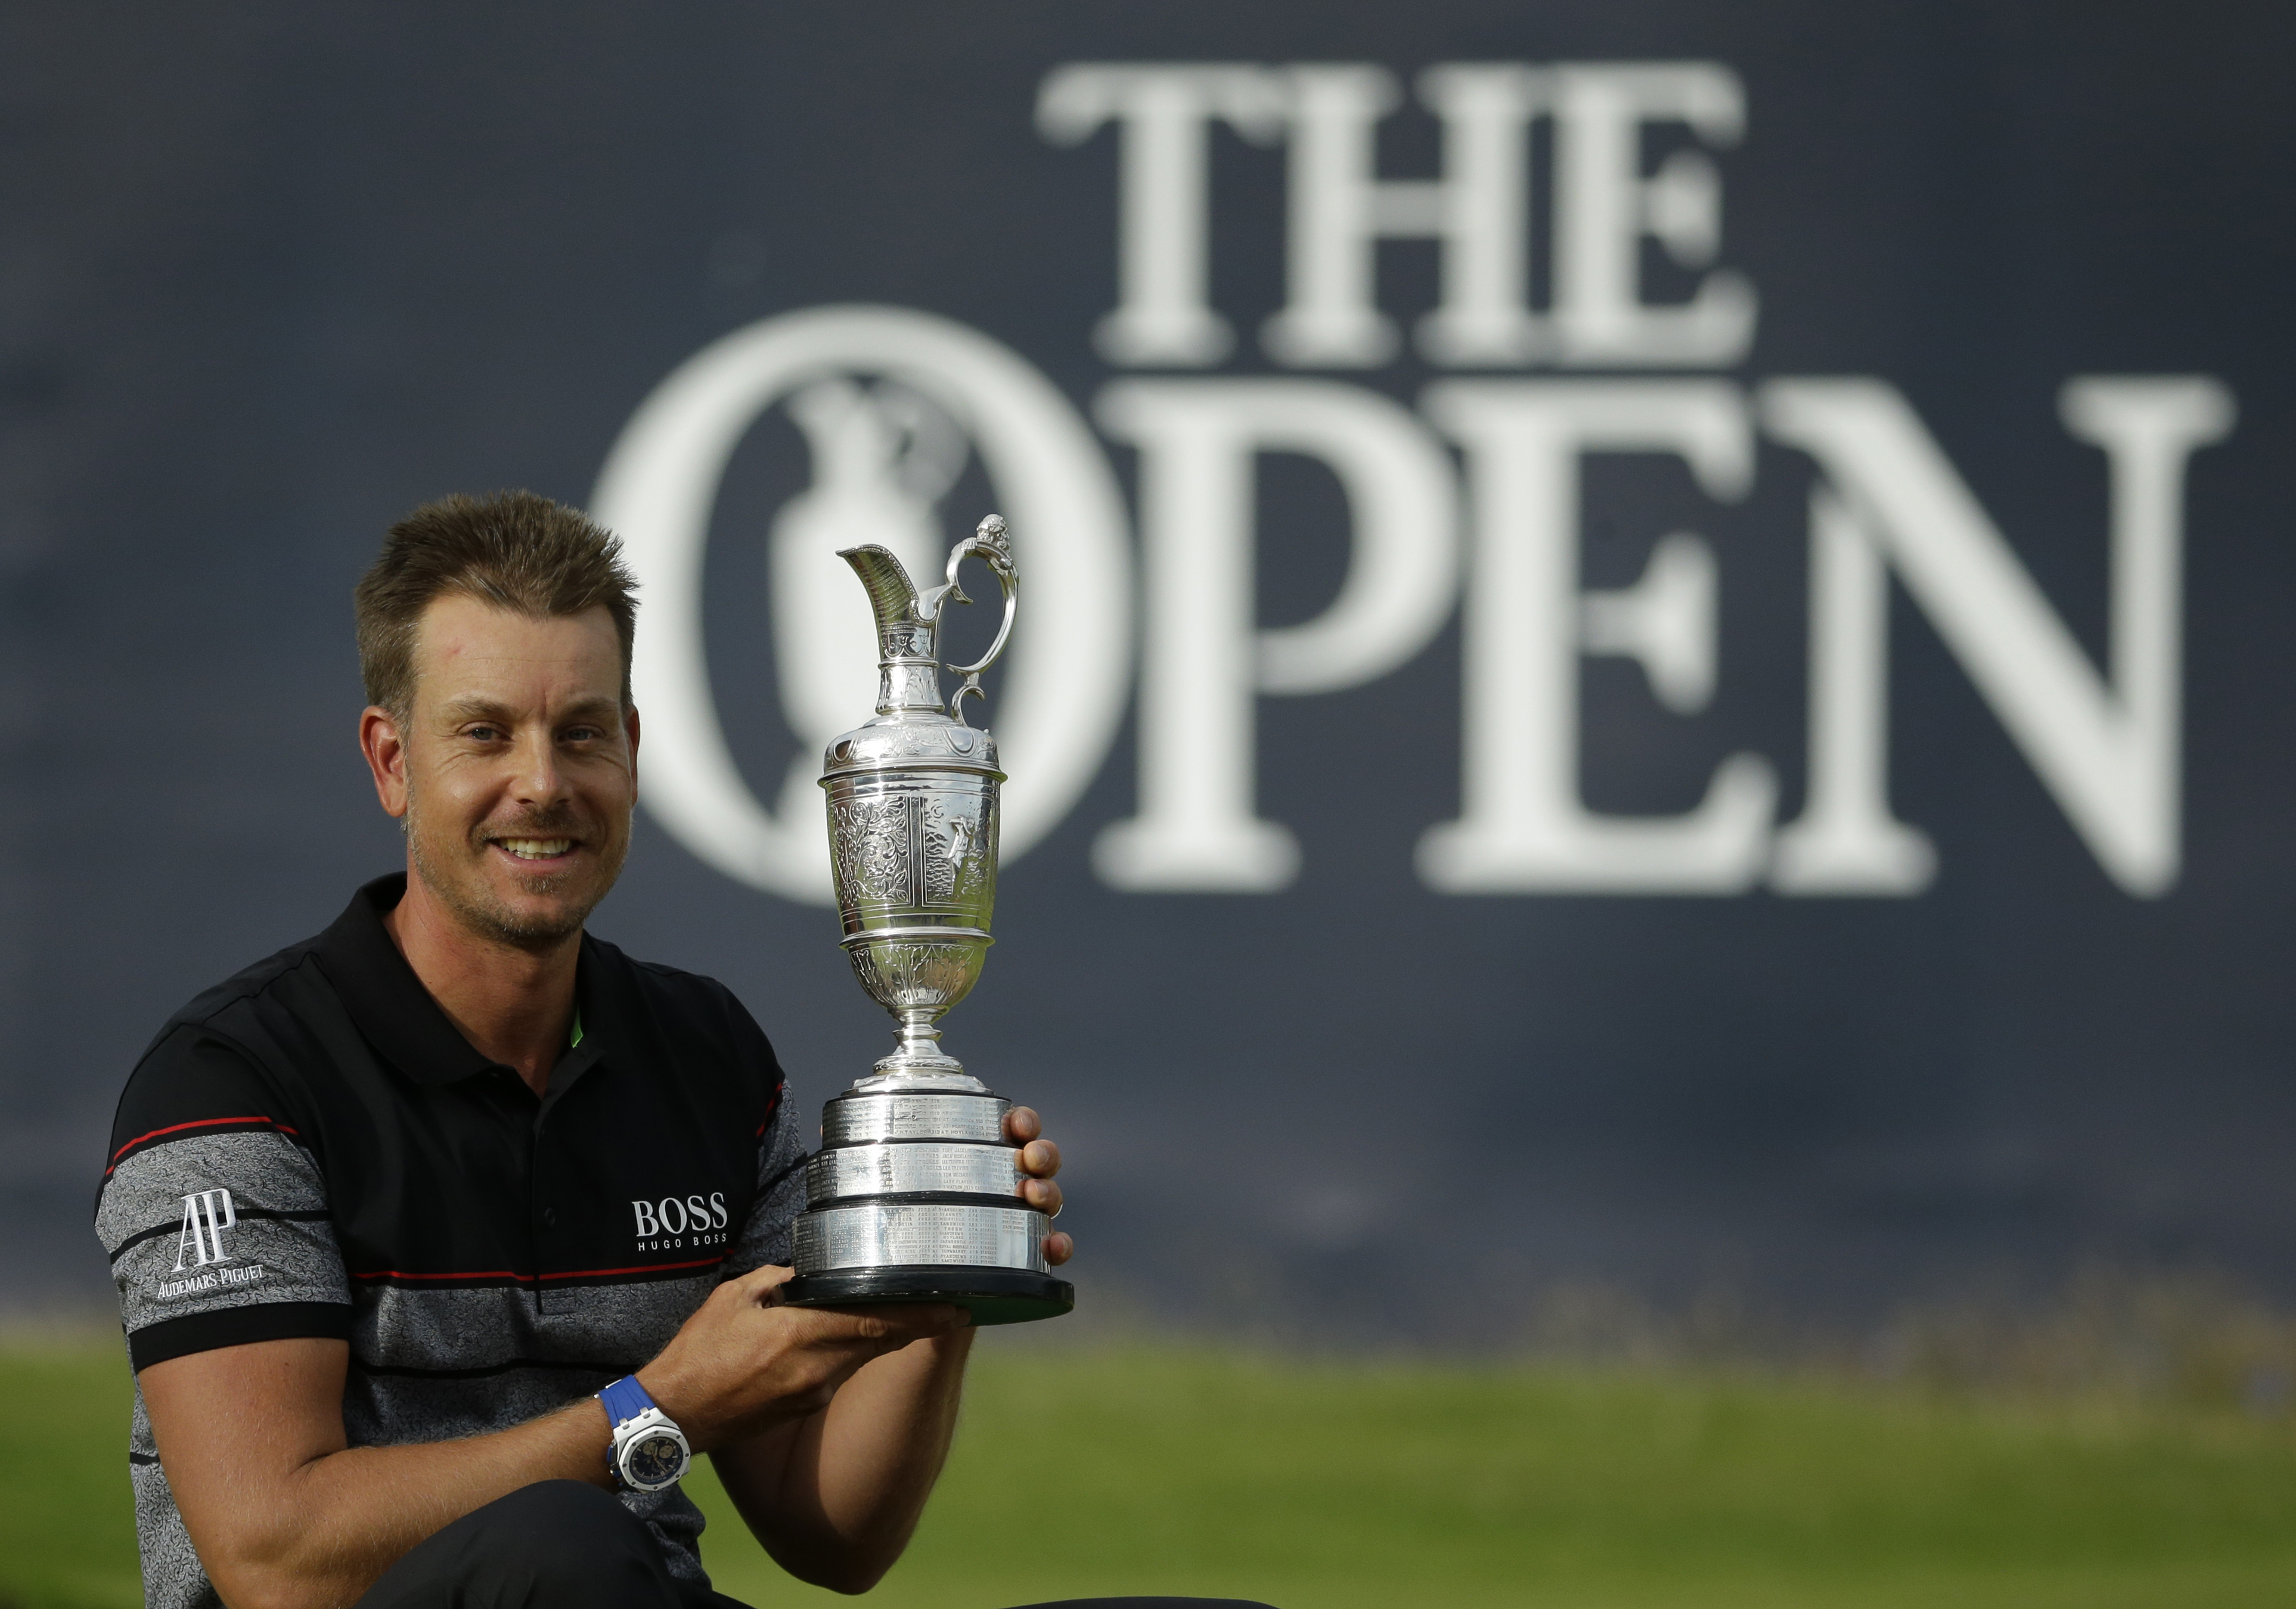 Henrik Stenson of Sweden poses with the trophy after winning the British Open Golf Championships at the Royal Troon Golf Club in Troon, Scotland, Sunday, July 17, 2016. (AP Photo/Matt Dunham)